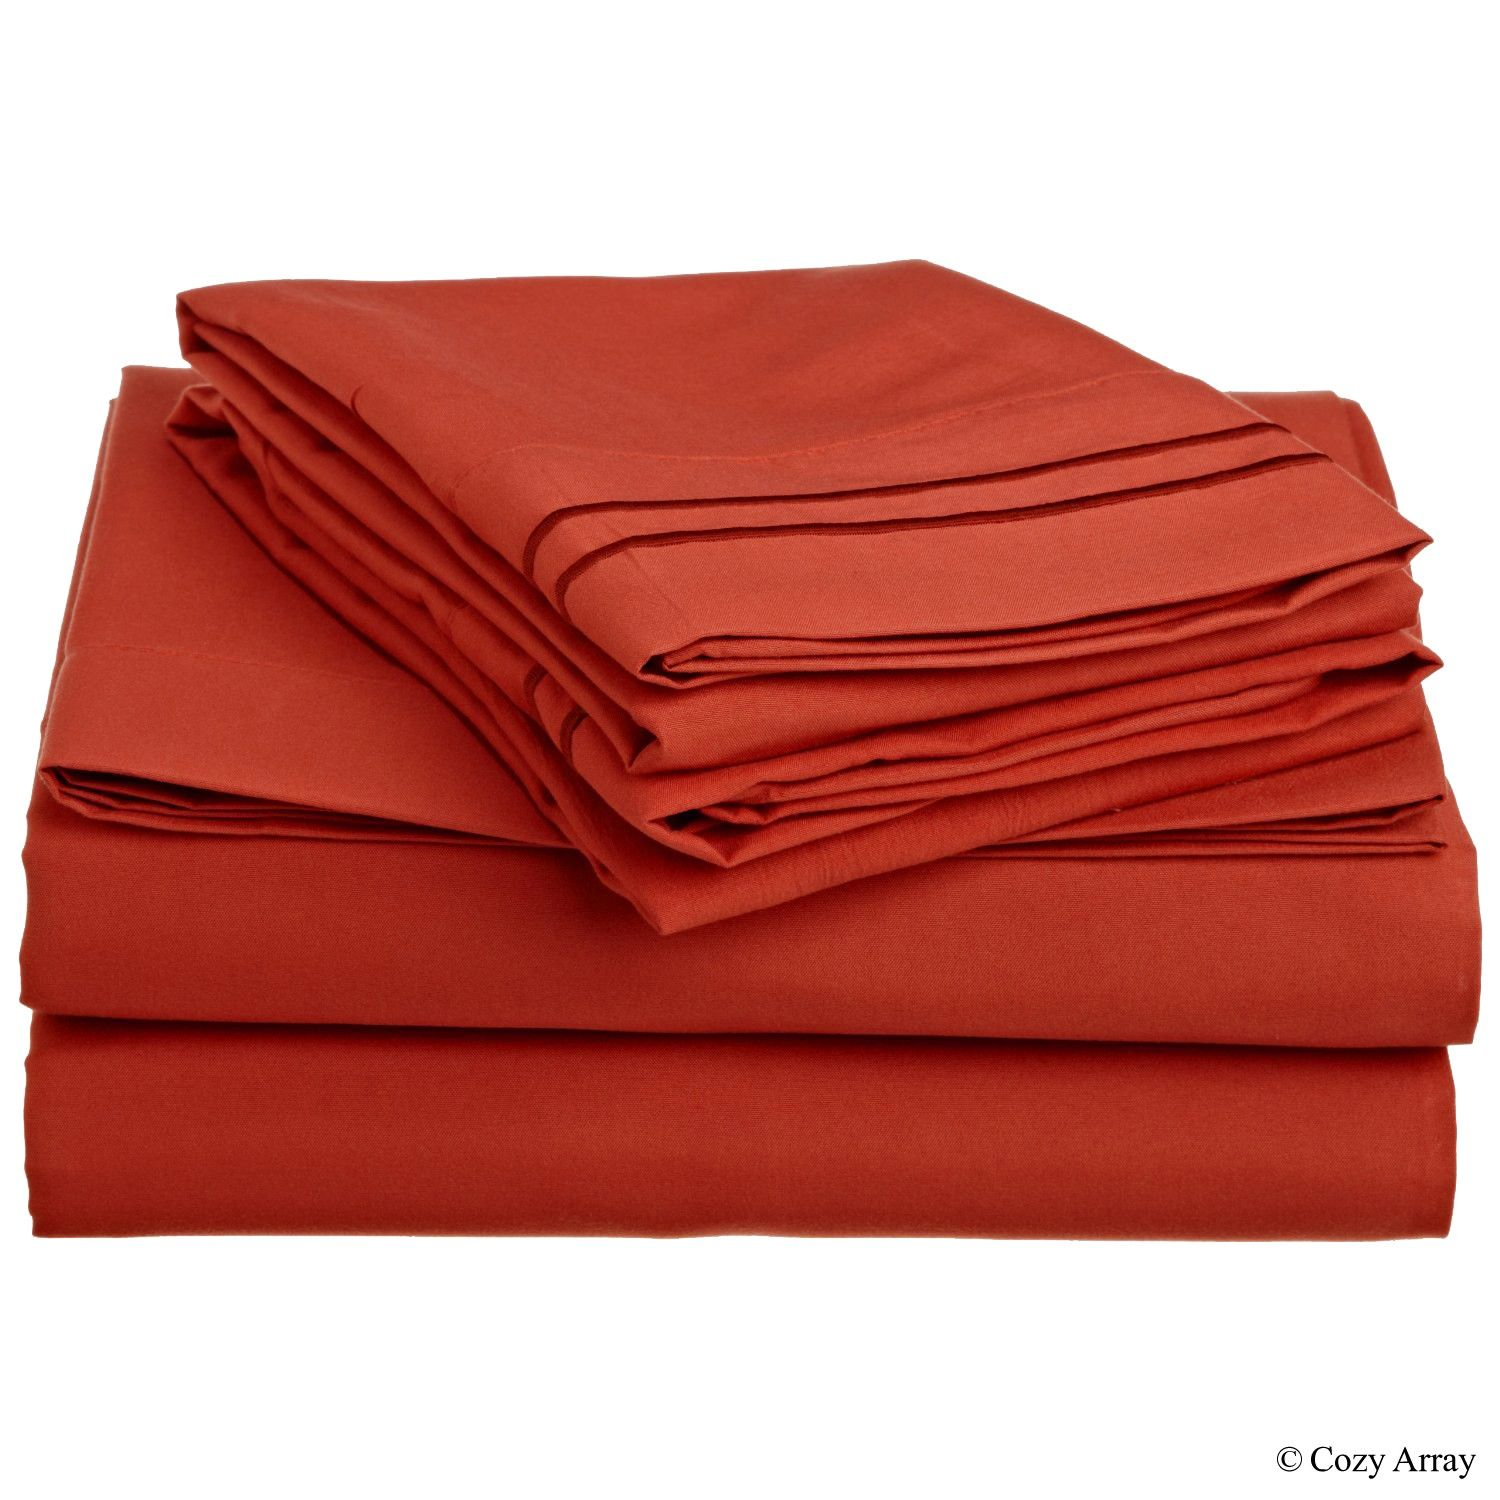 King Size Bed Sheet Set Bedding Teal And Rust Bed Sheet Sets King Size Sheets